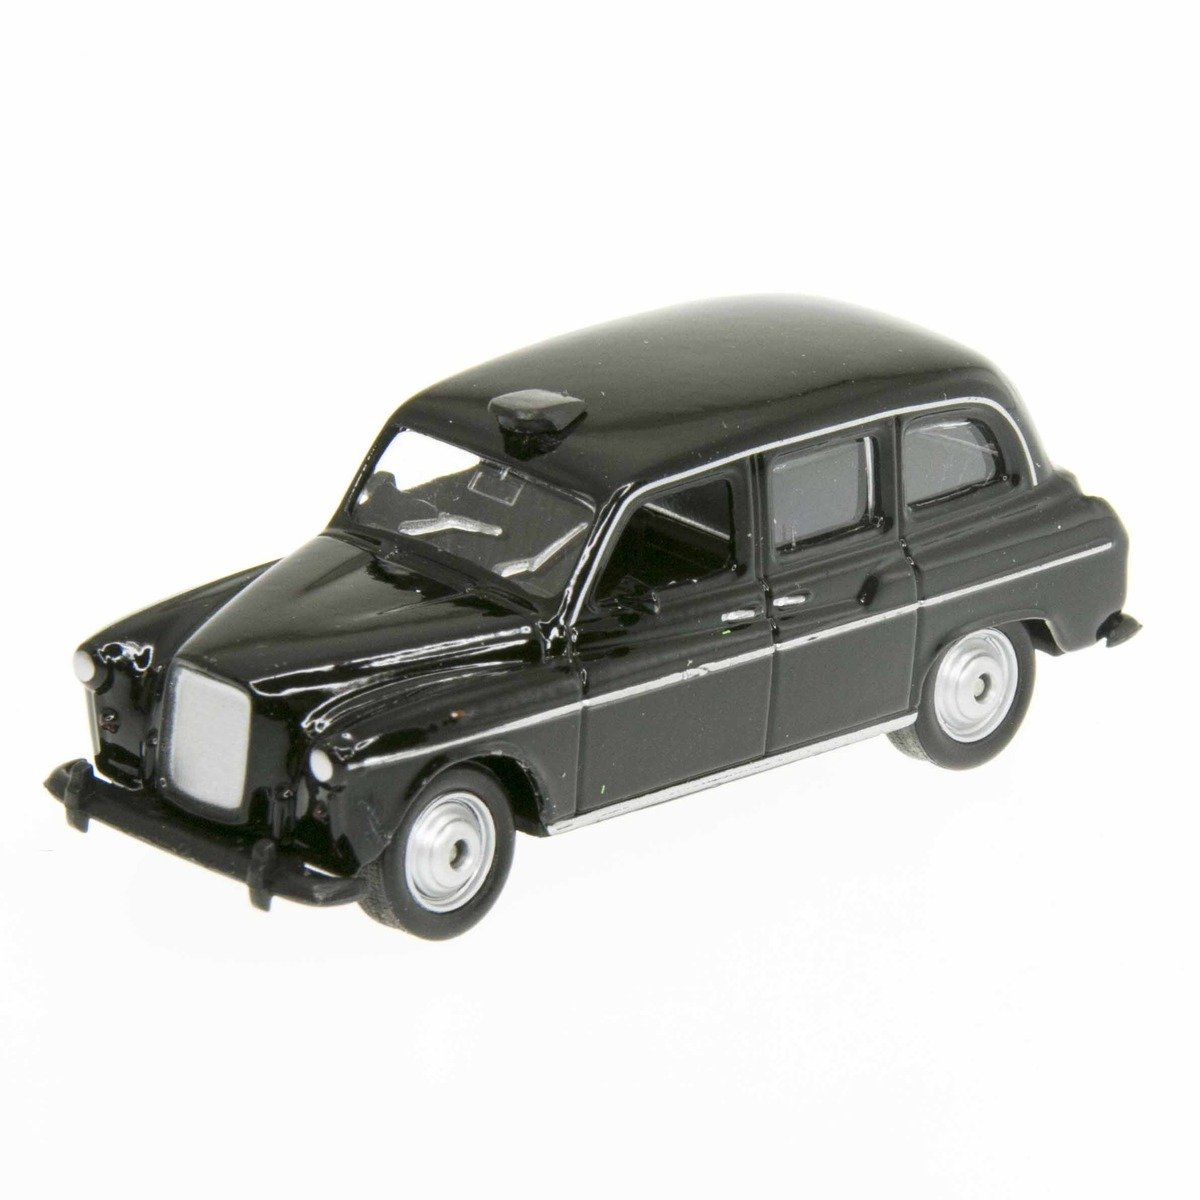 1/60 Welly 52240 Austin FX4 London Taxi